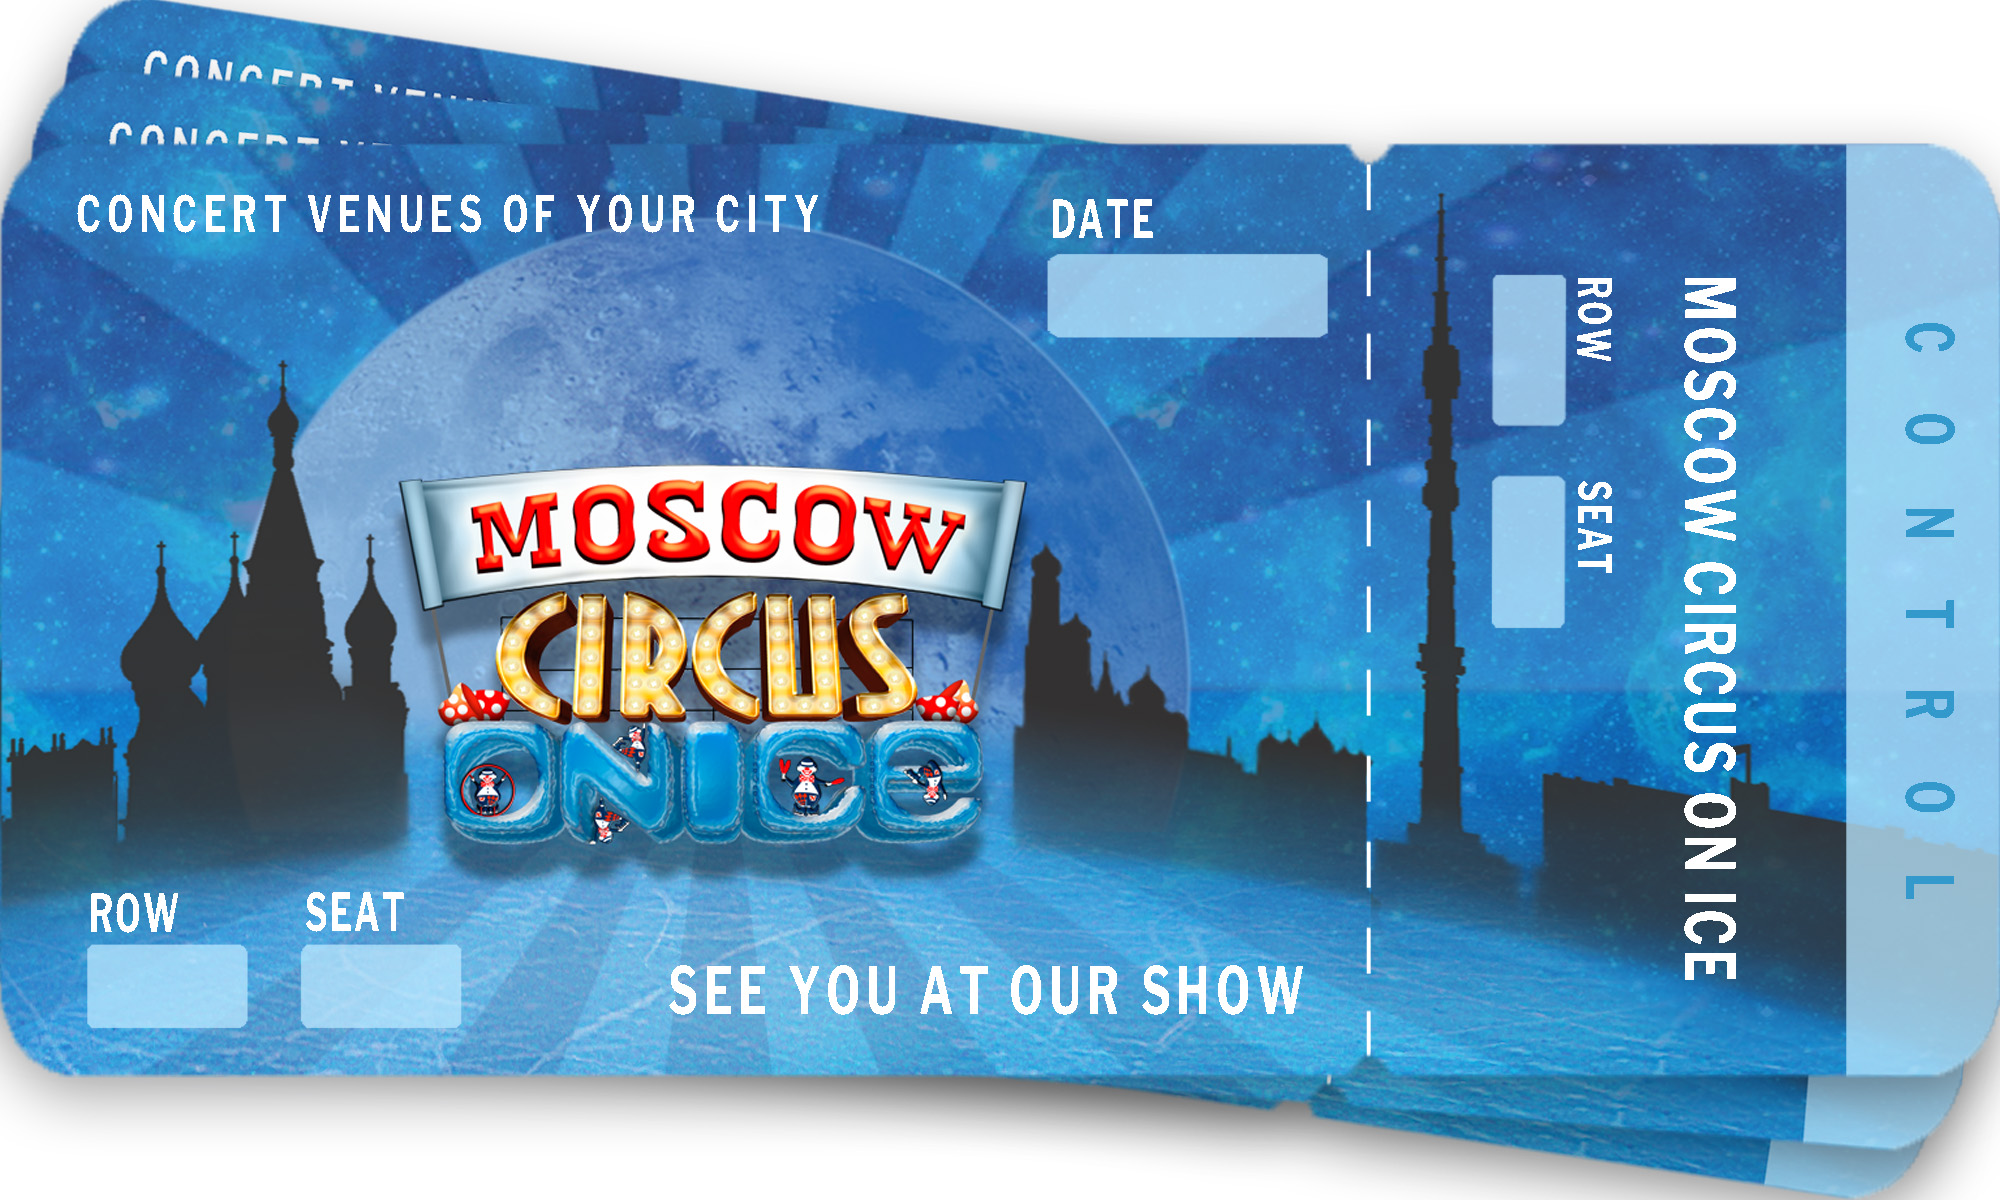 Moscow circus on ice tickets in Moscow circus on ice form style